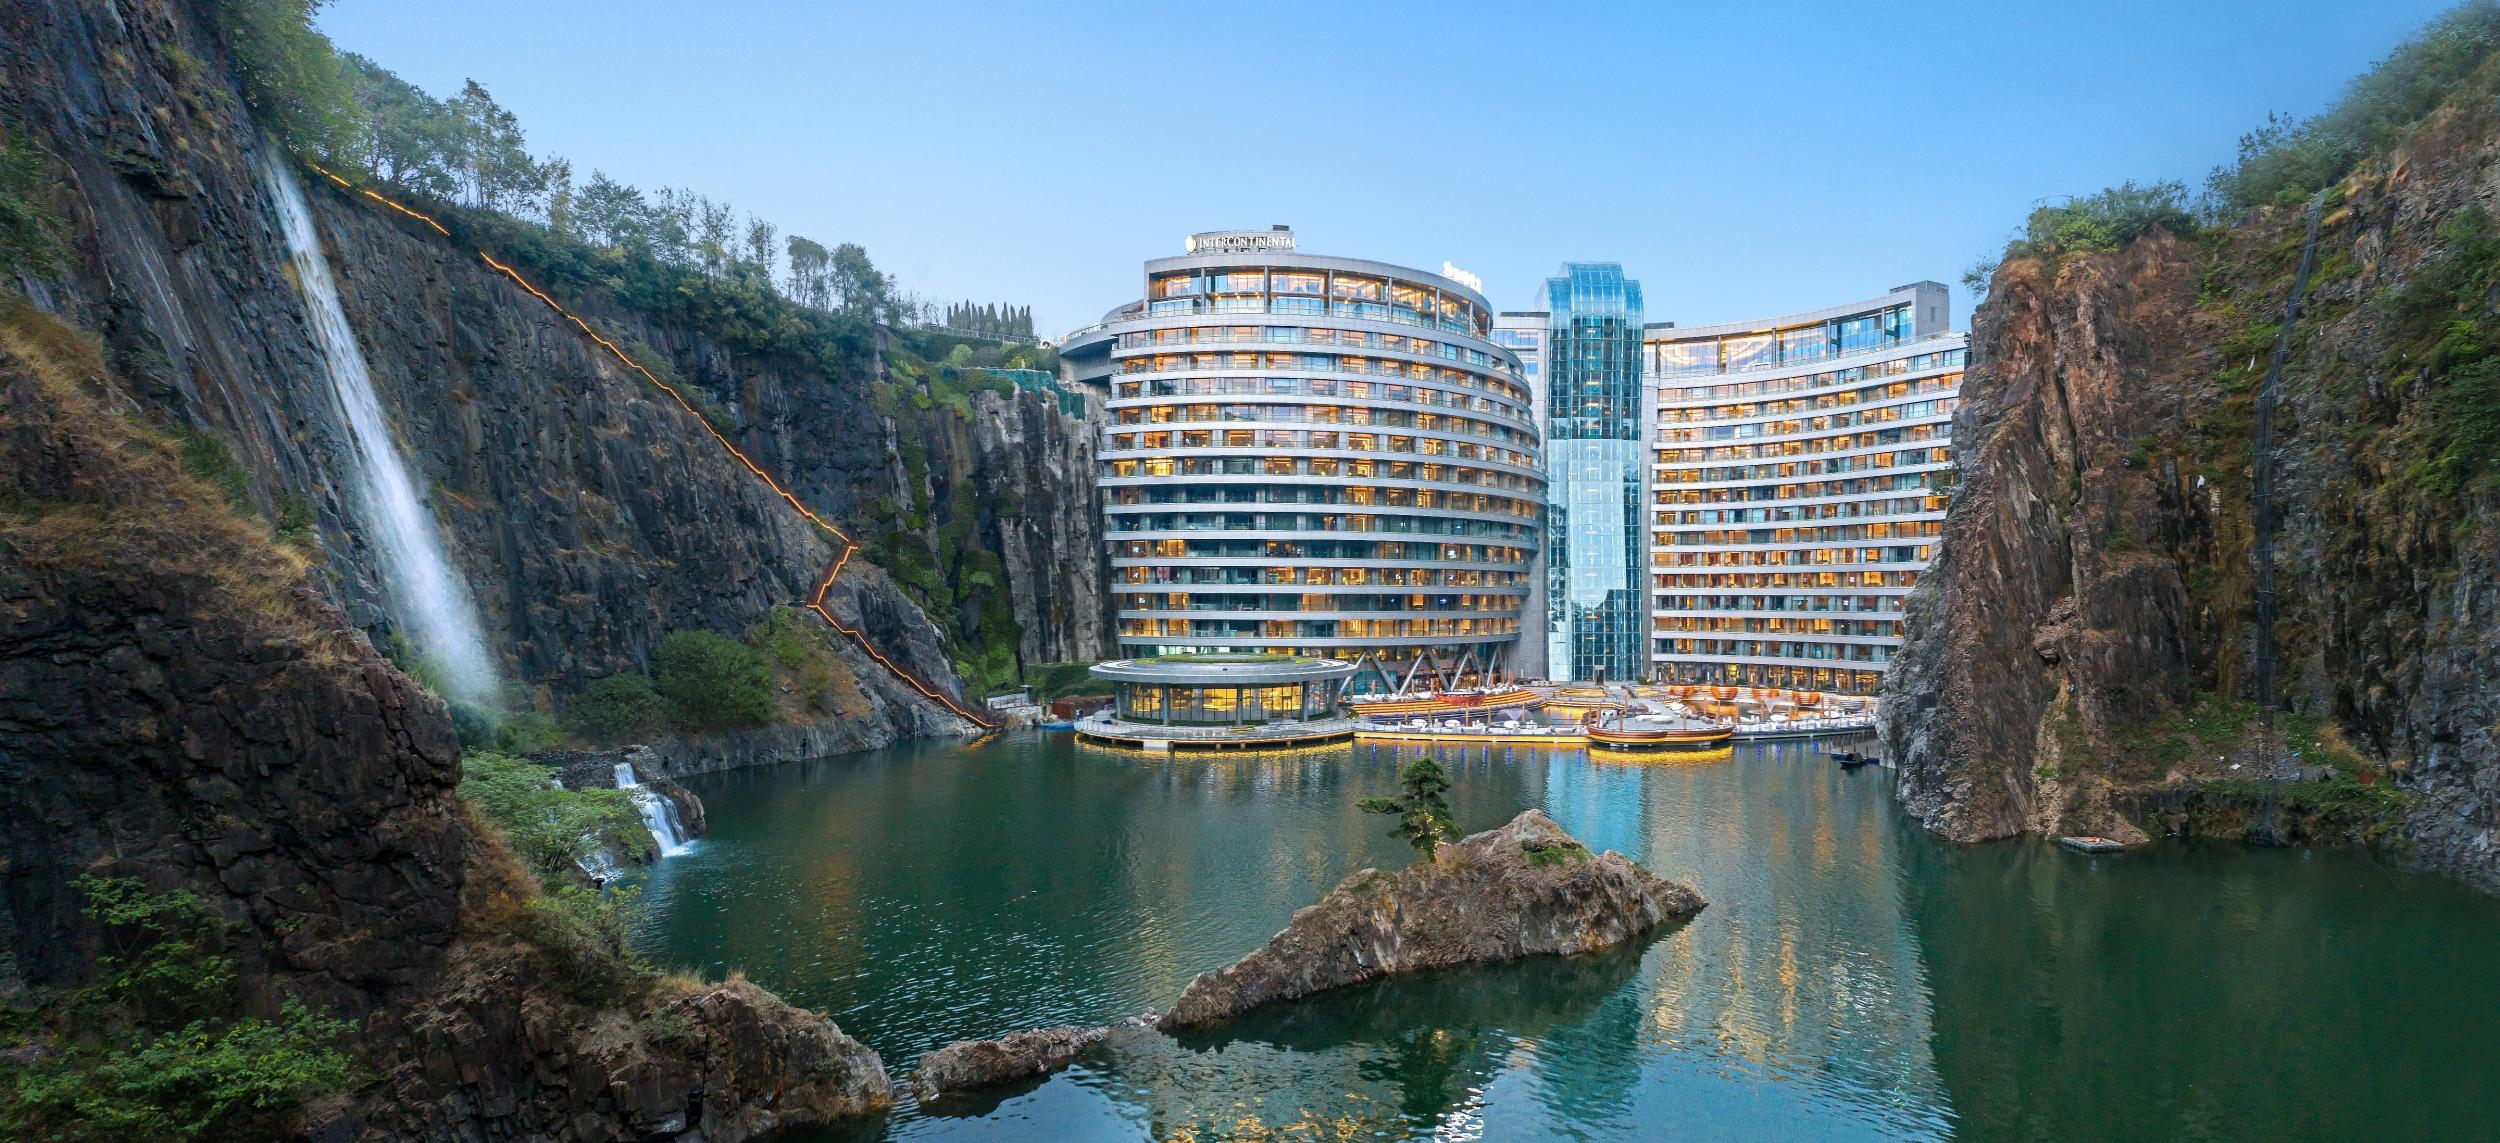 The world's first 'quarry hotel' opens in Shanghai